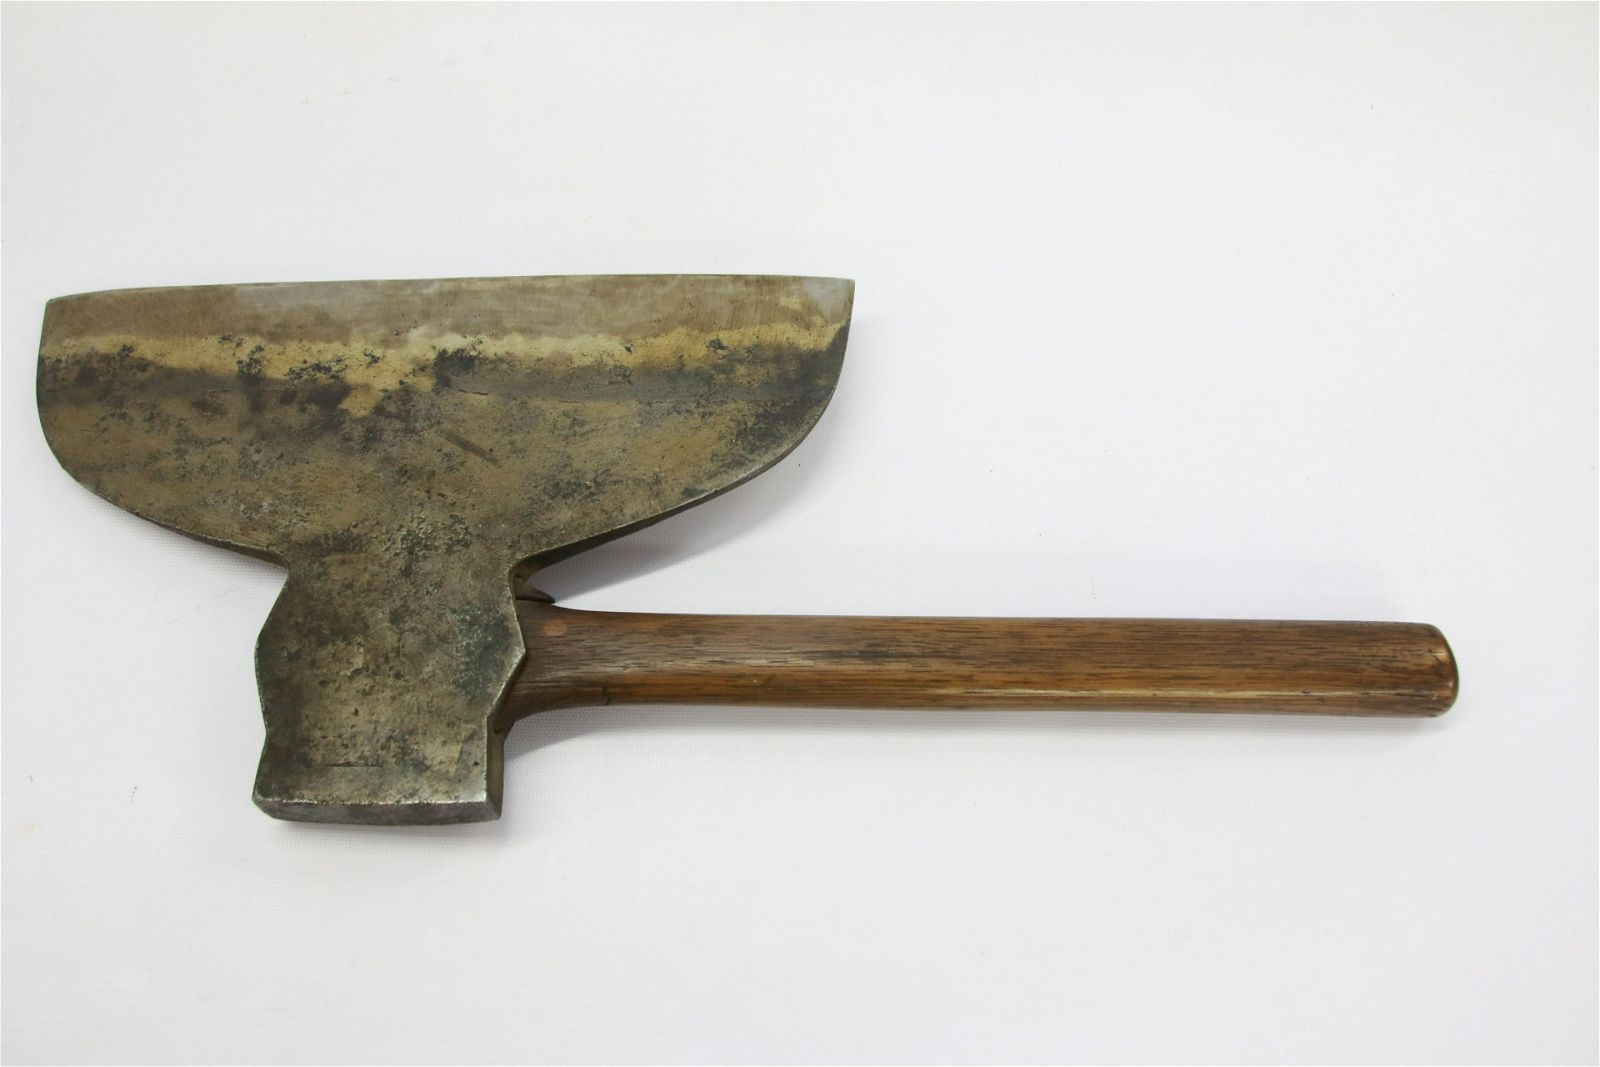 BROAD AXE WITH WOODEN HANDLE